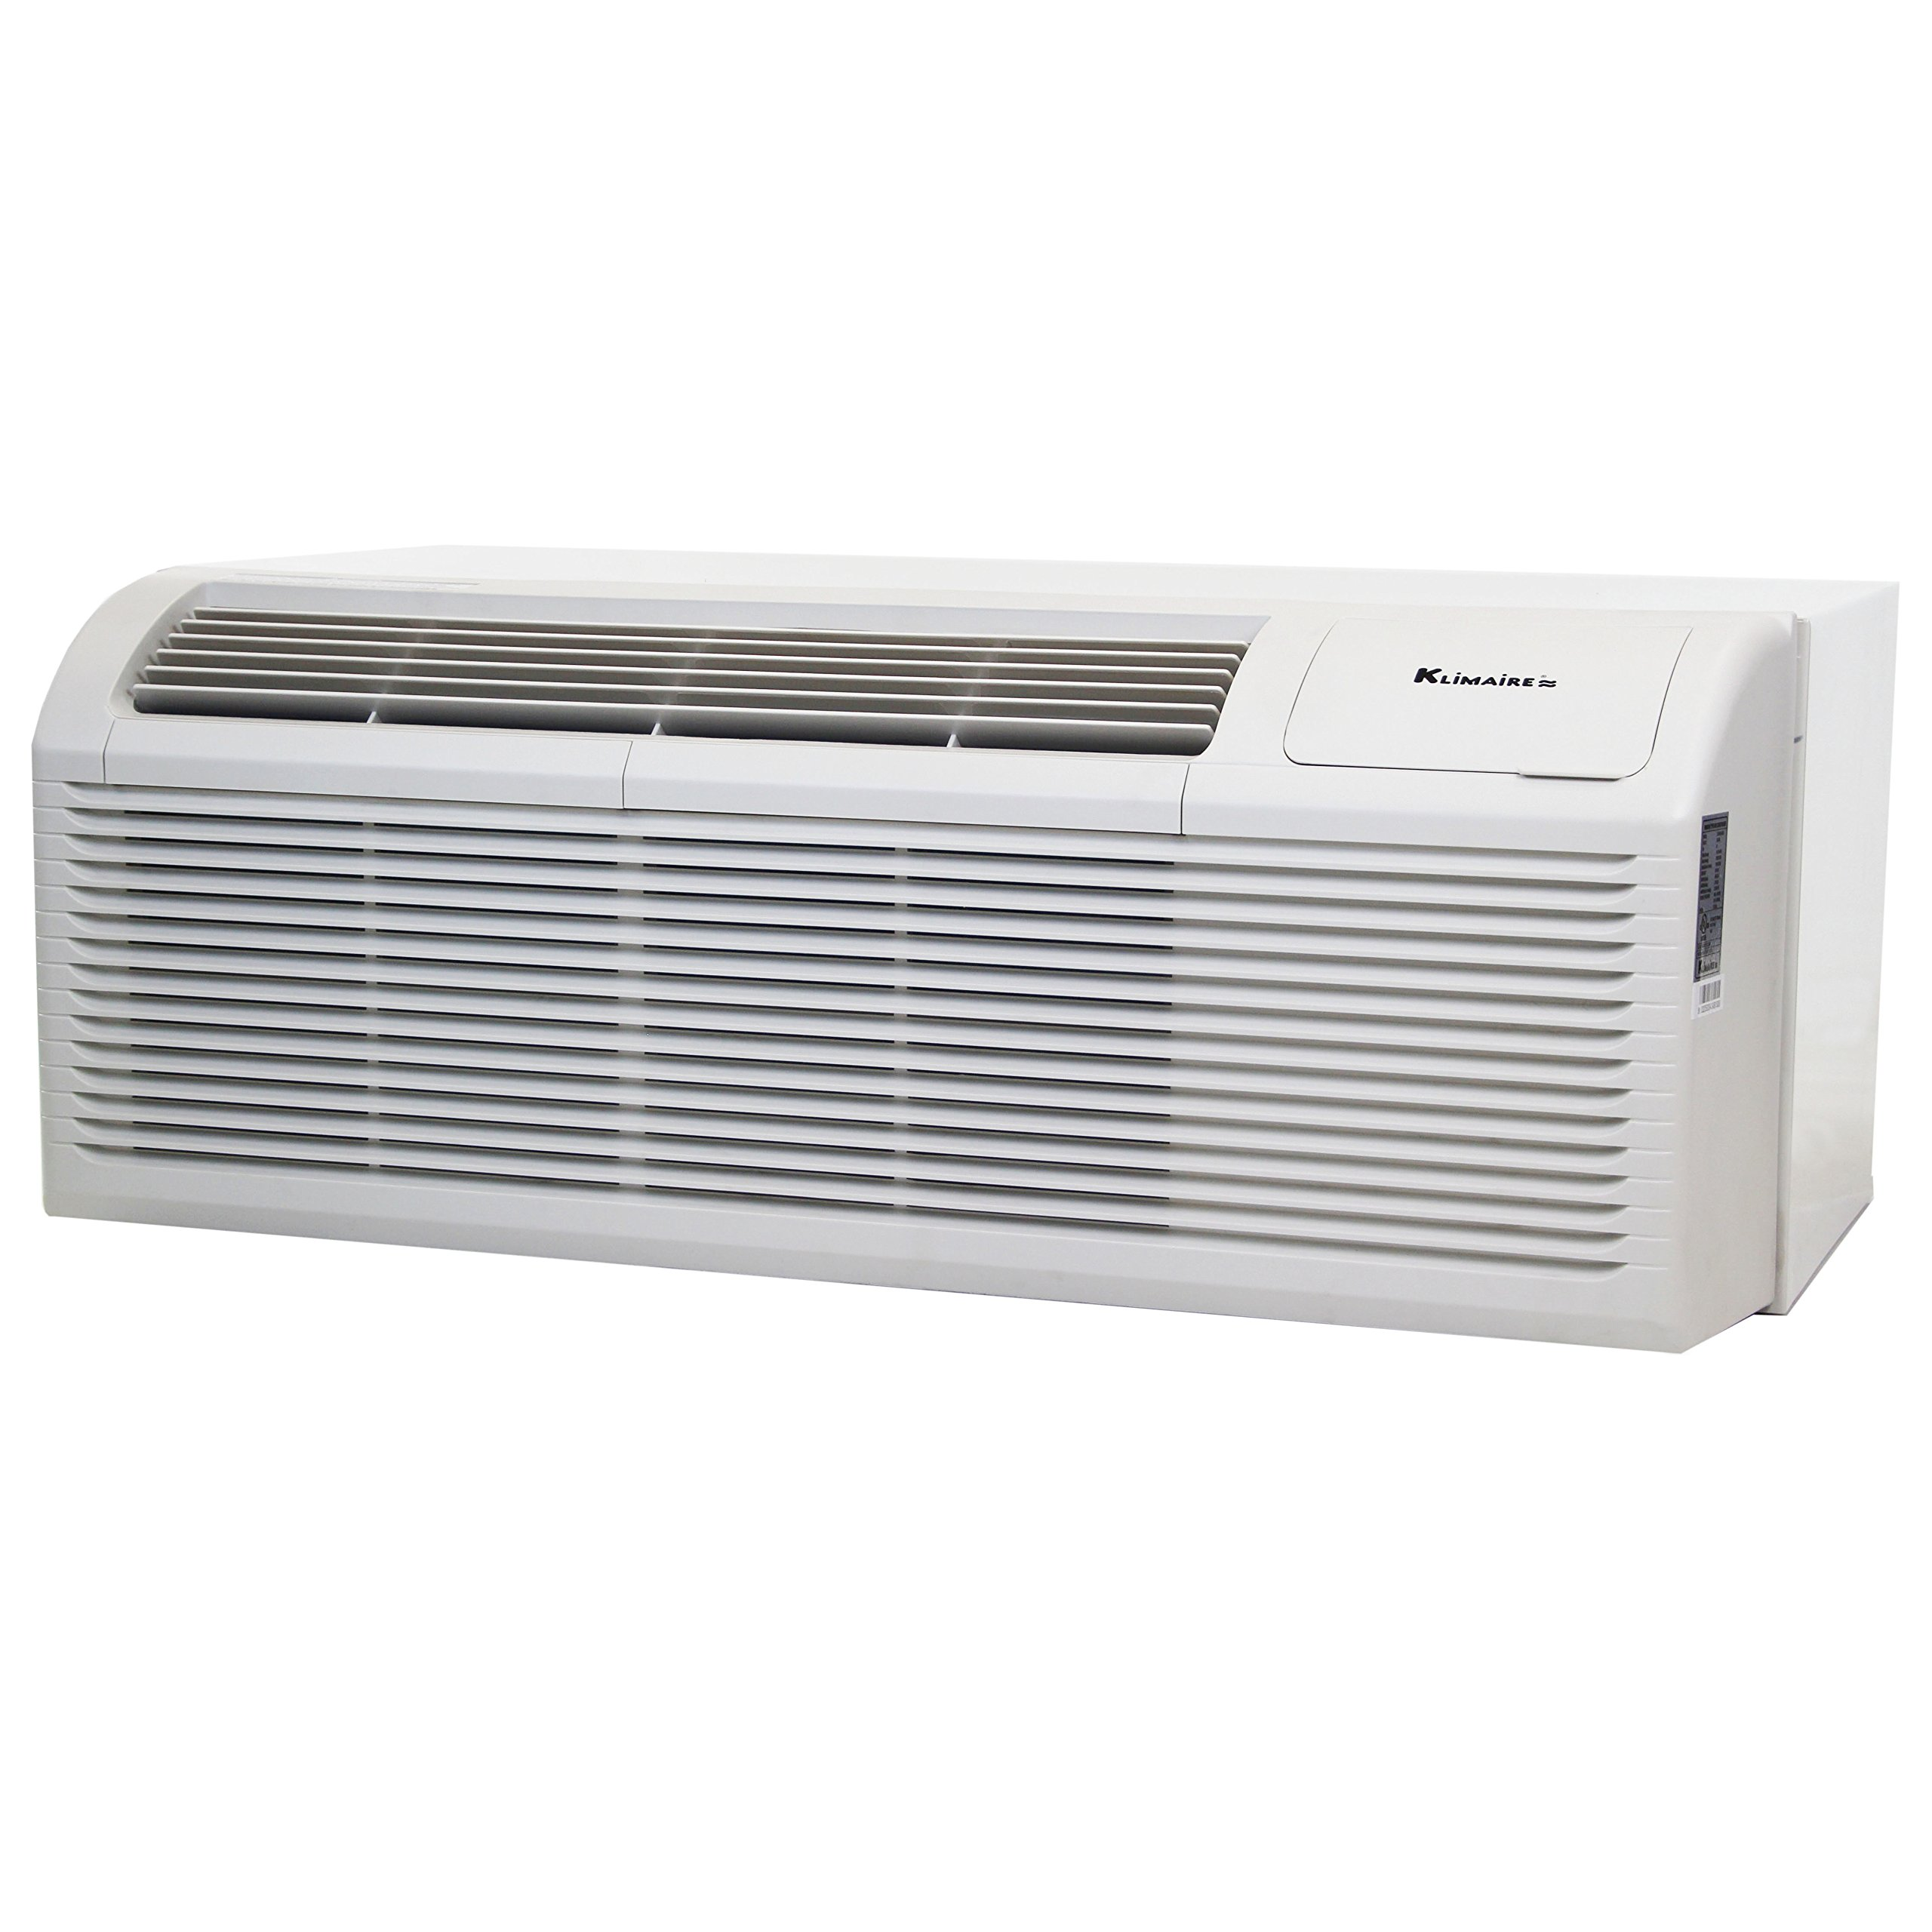 9000 BTU KLIMAIRE 11.3 EER PTHP Heat Pump with 3kW Auxilary Electric Heater includes Wall Sleeve and Aluminum Grille